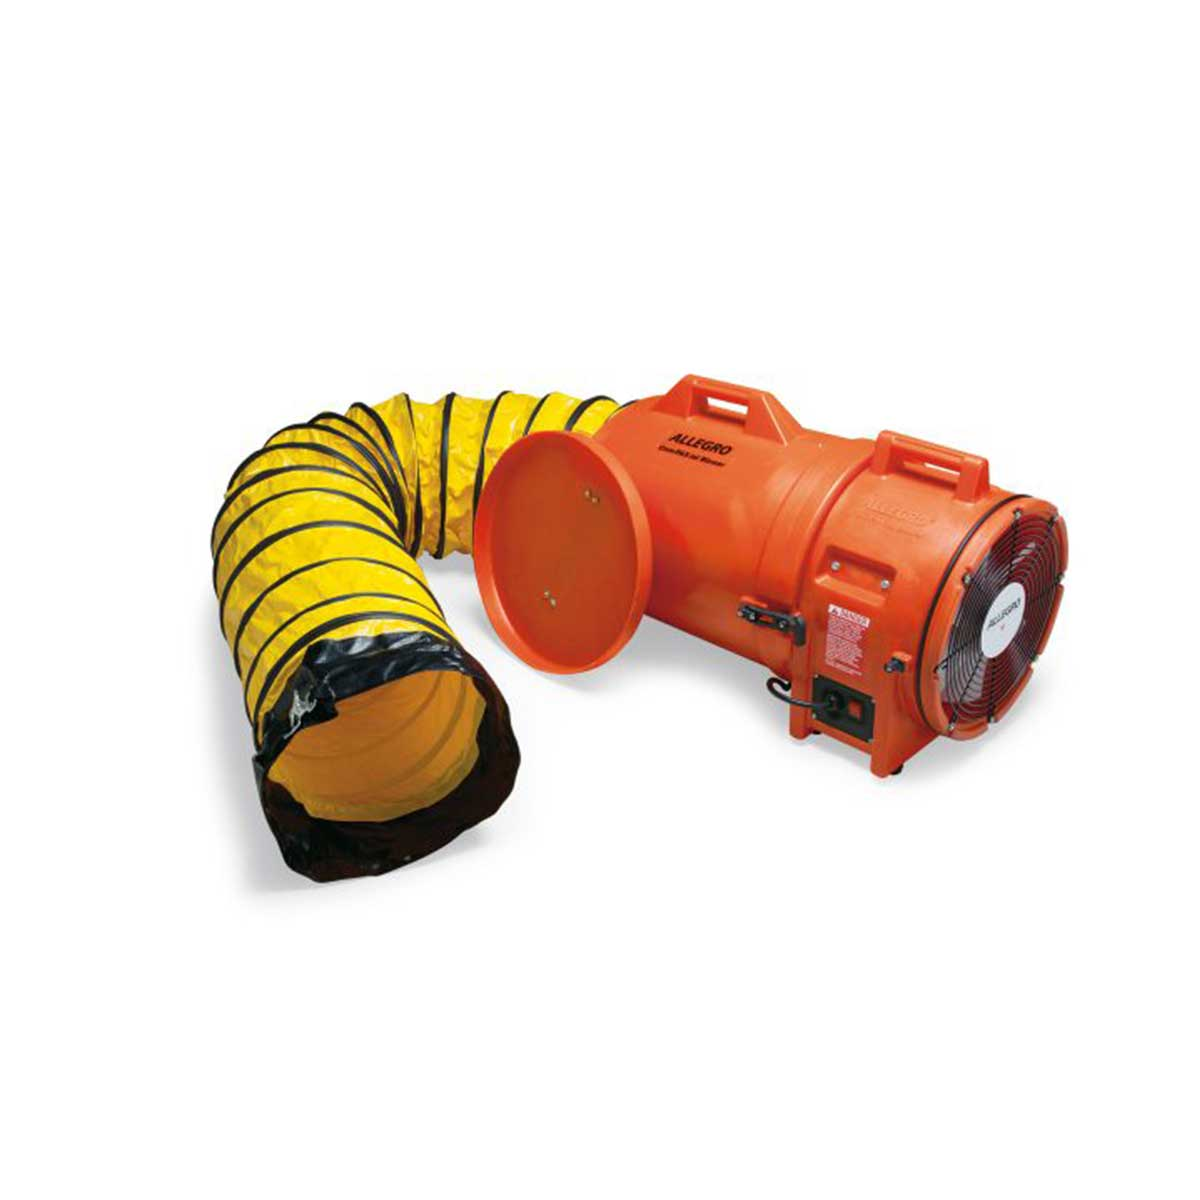 12″ Axial AC Plastic Blower w/ Canister & 25′ Ducting. Part: ALL-9543‐25. Pkg: